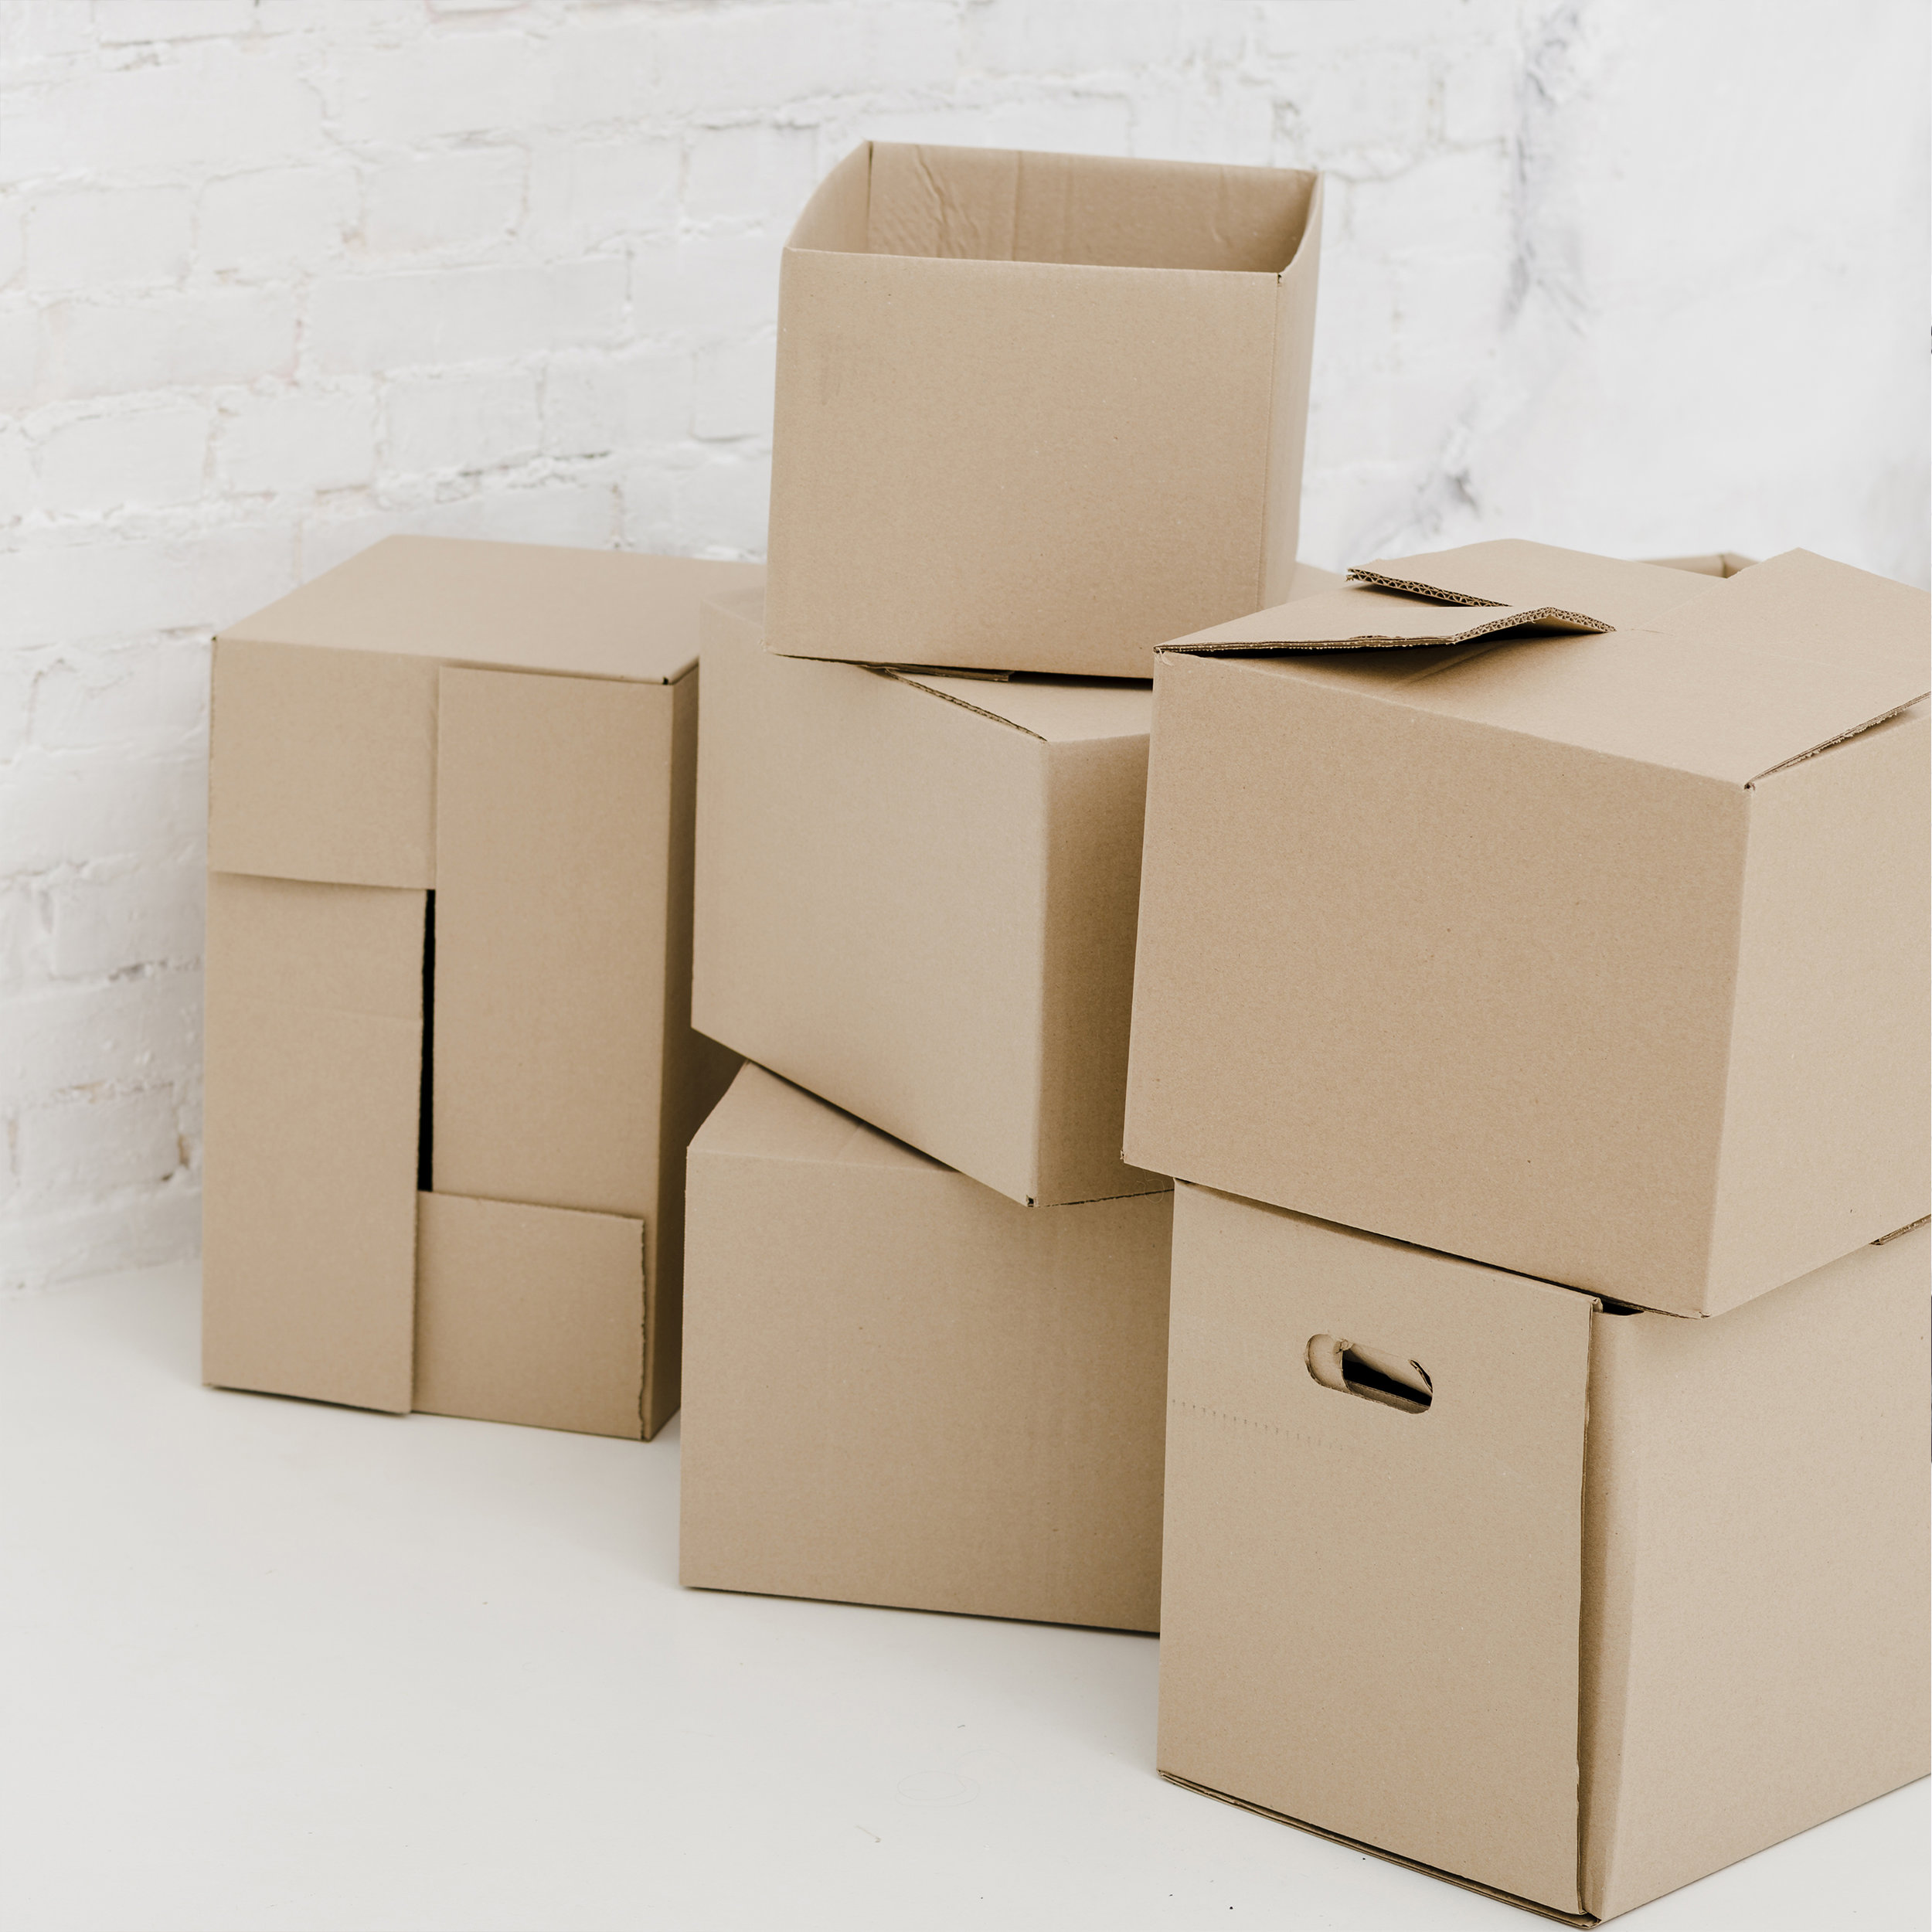 |moving - We help you organize everything in the rooms and spaces of your new home.